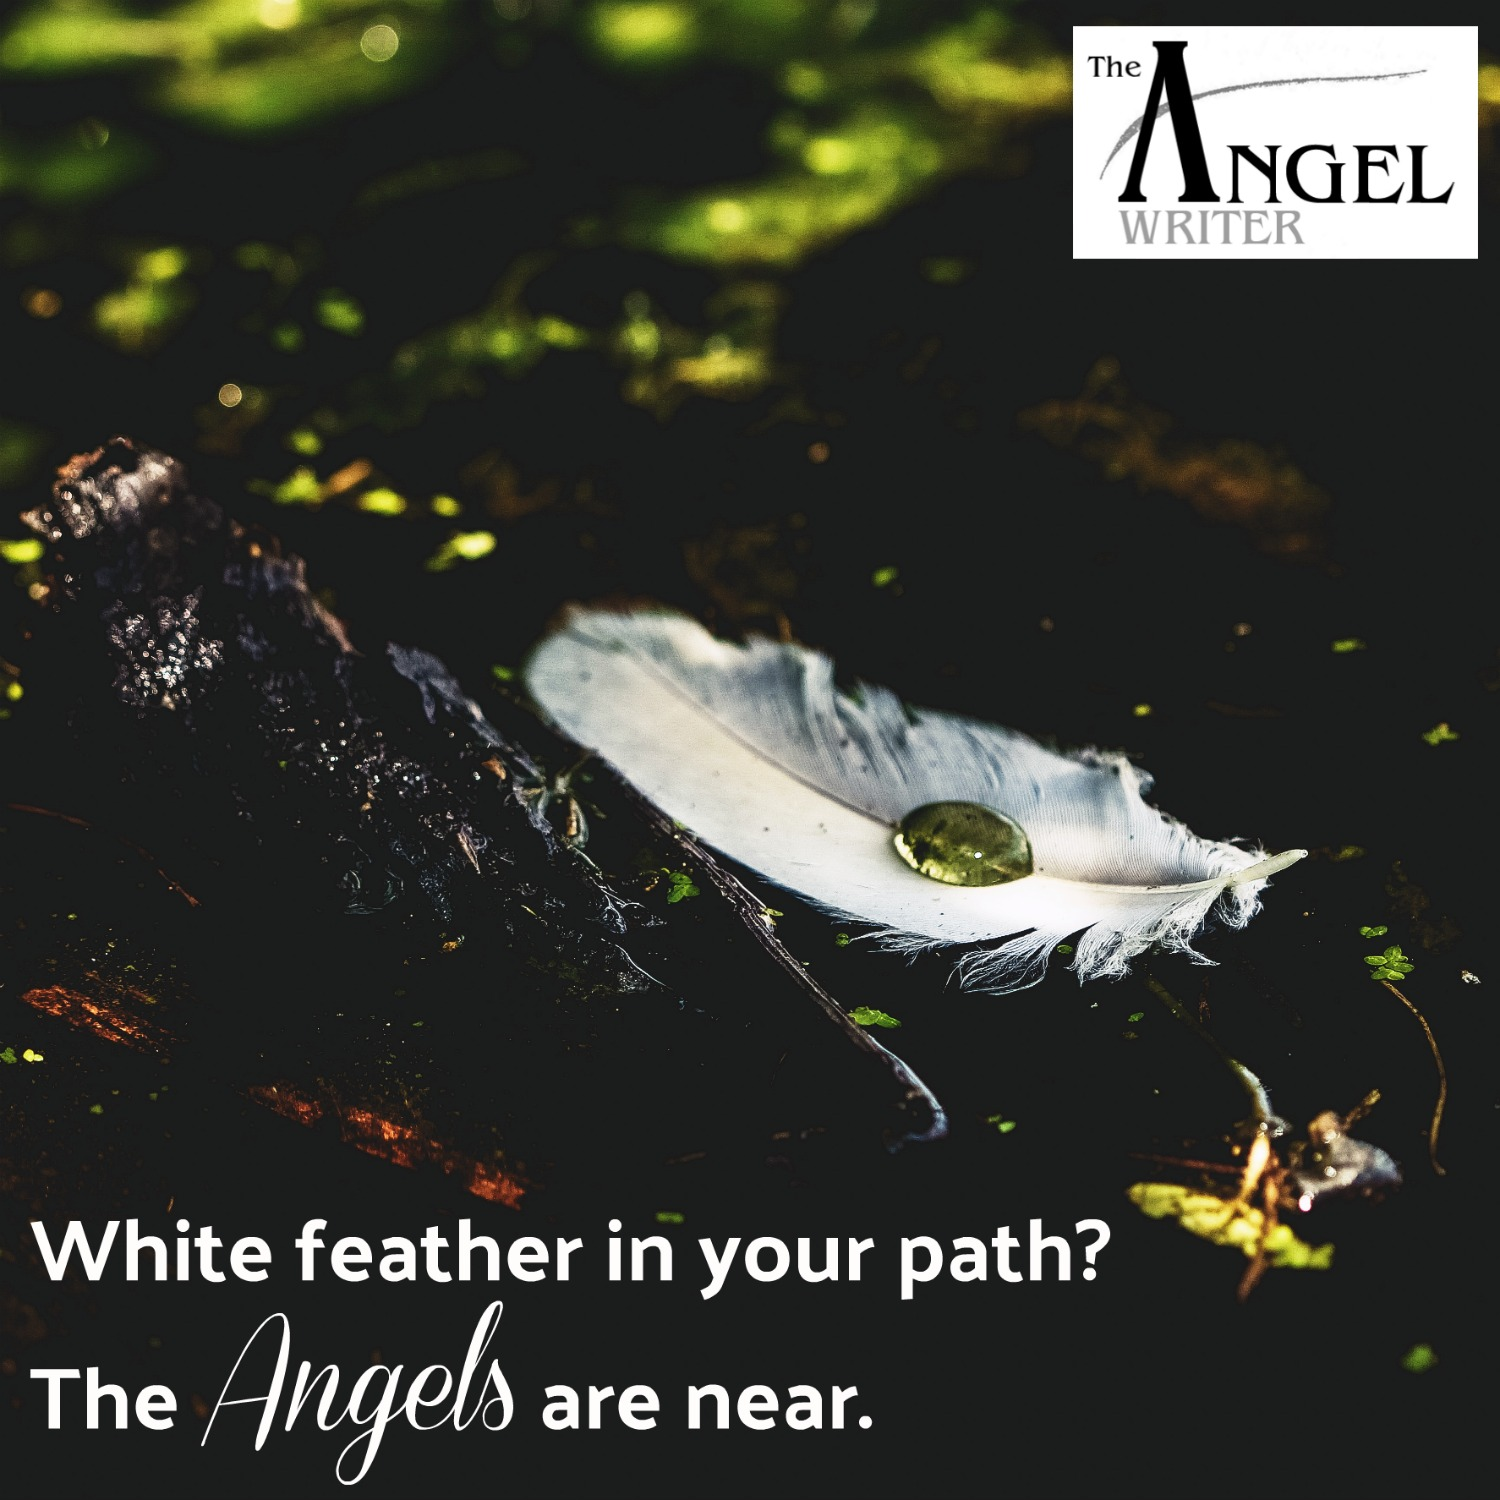 White_feather_sign_of_the_angels.jpg